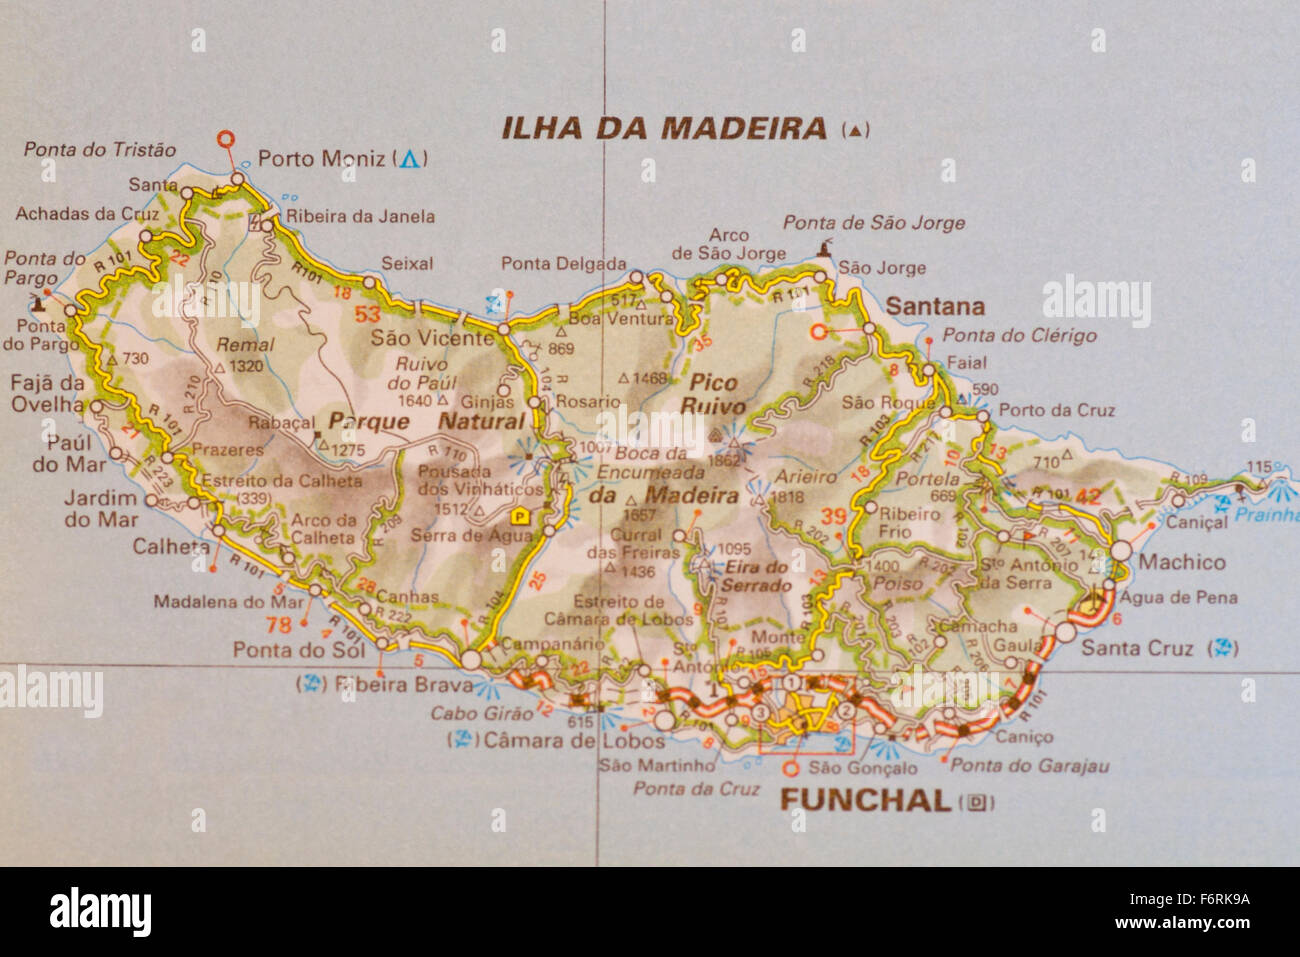 Map Of The Portuguese island Of Madiera - Stock Image